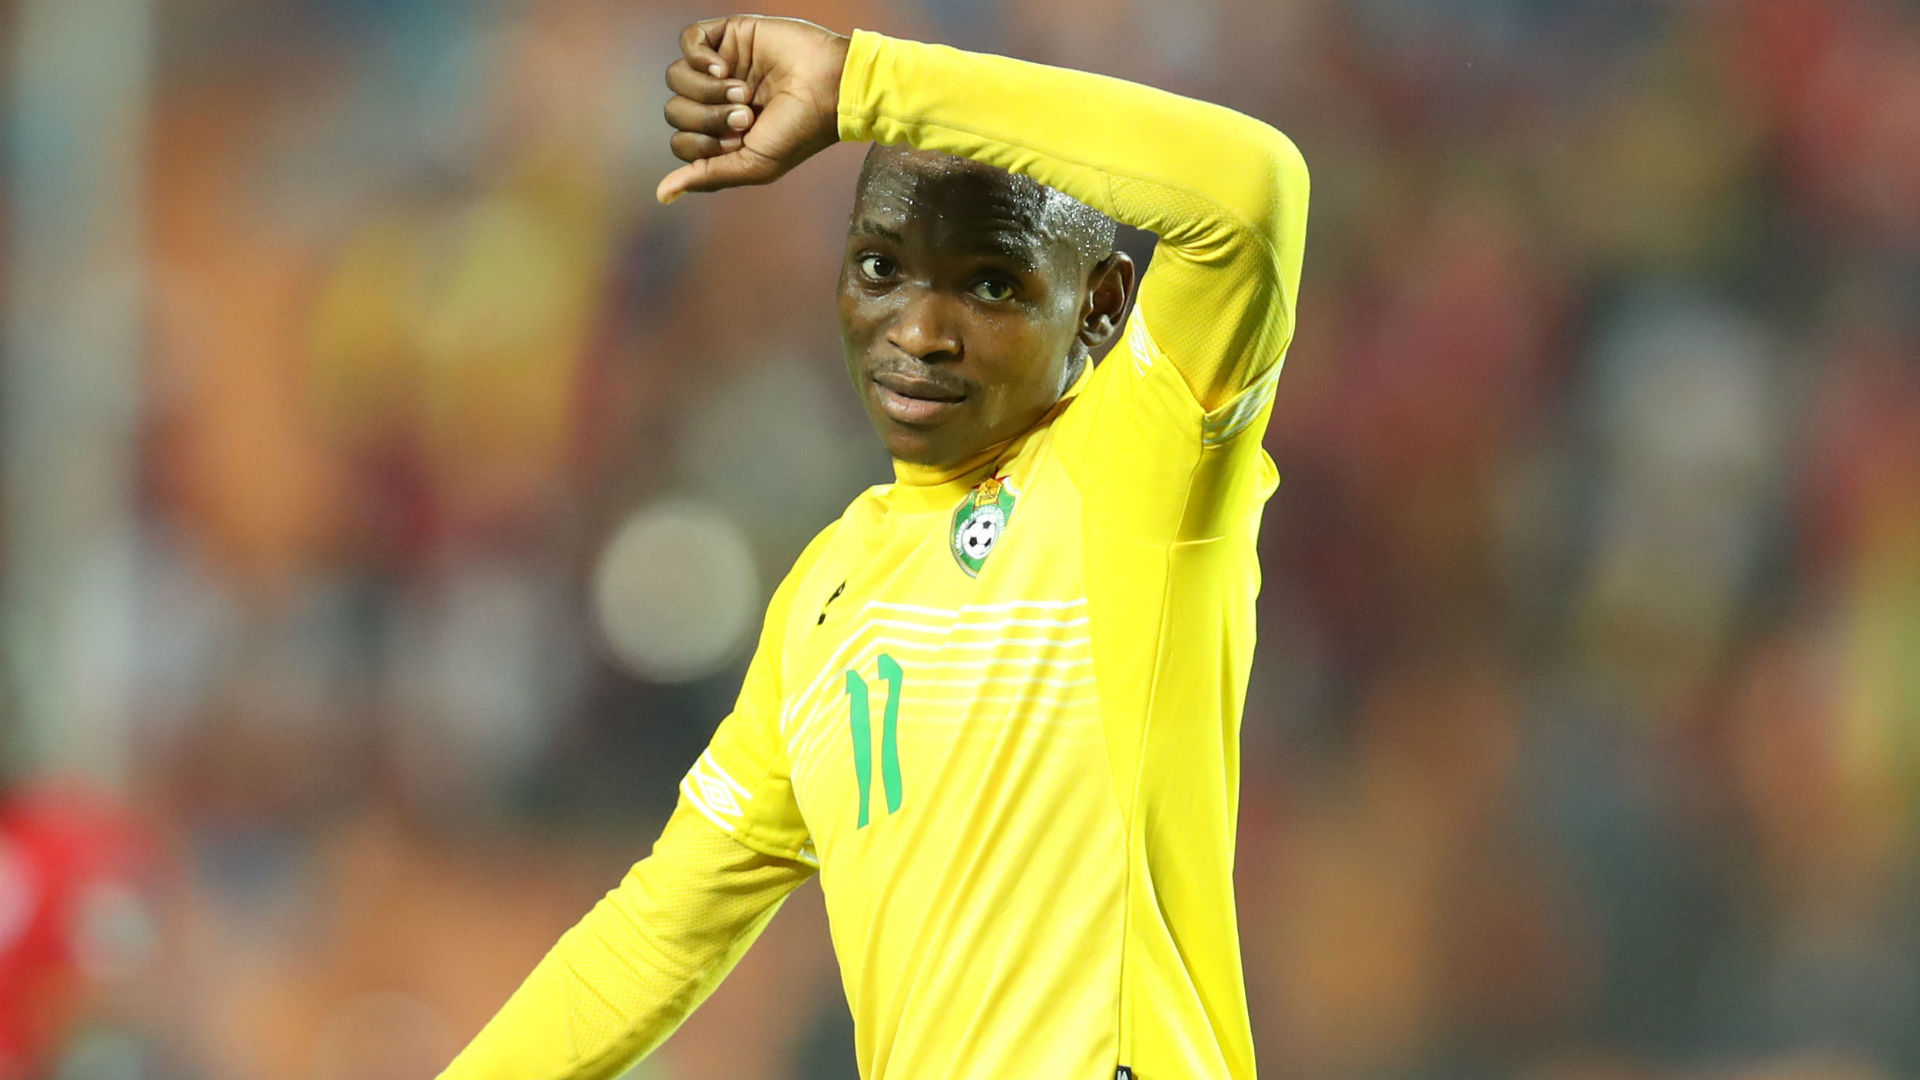 Billiat Khama to play home matches in South Africa